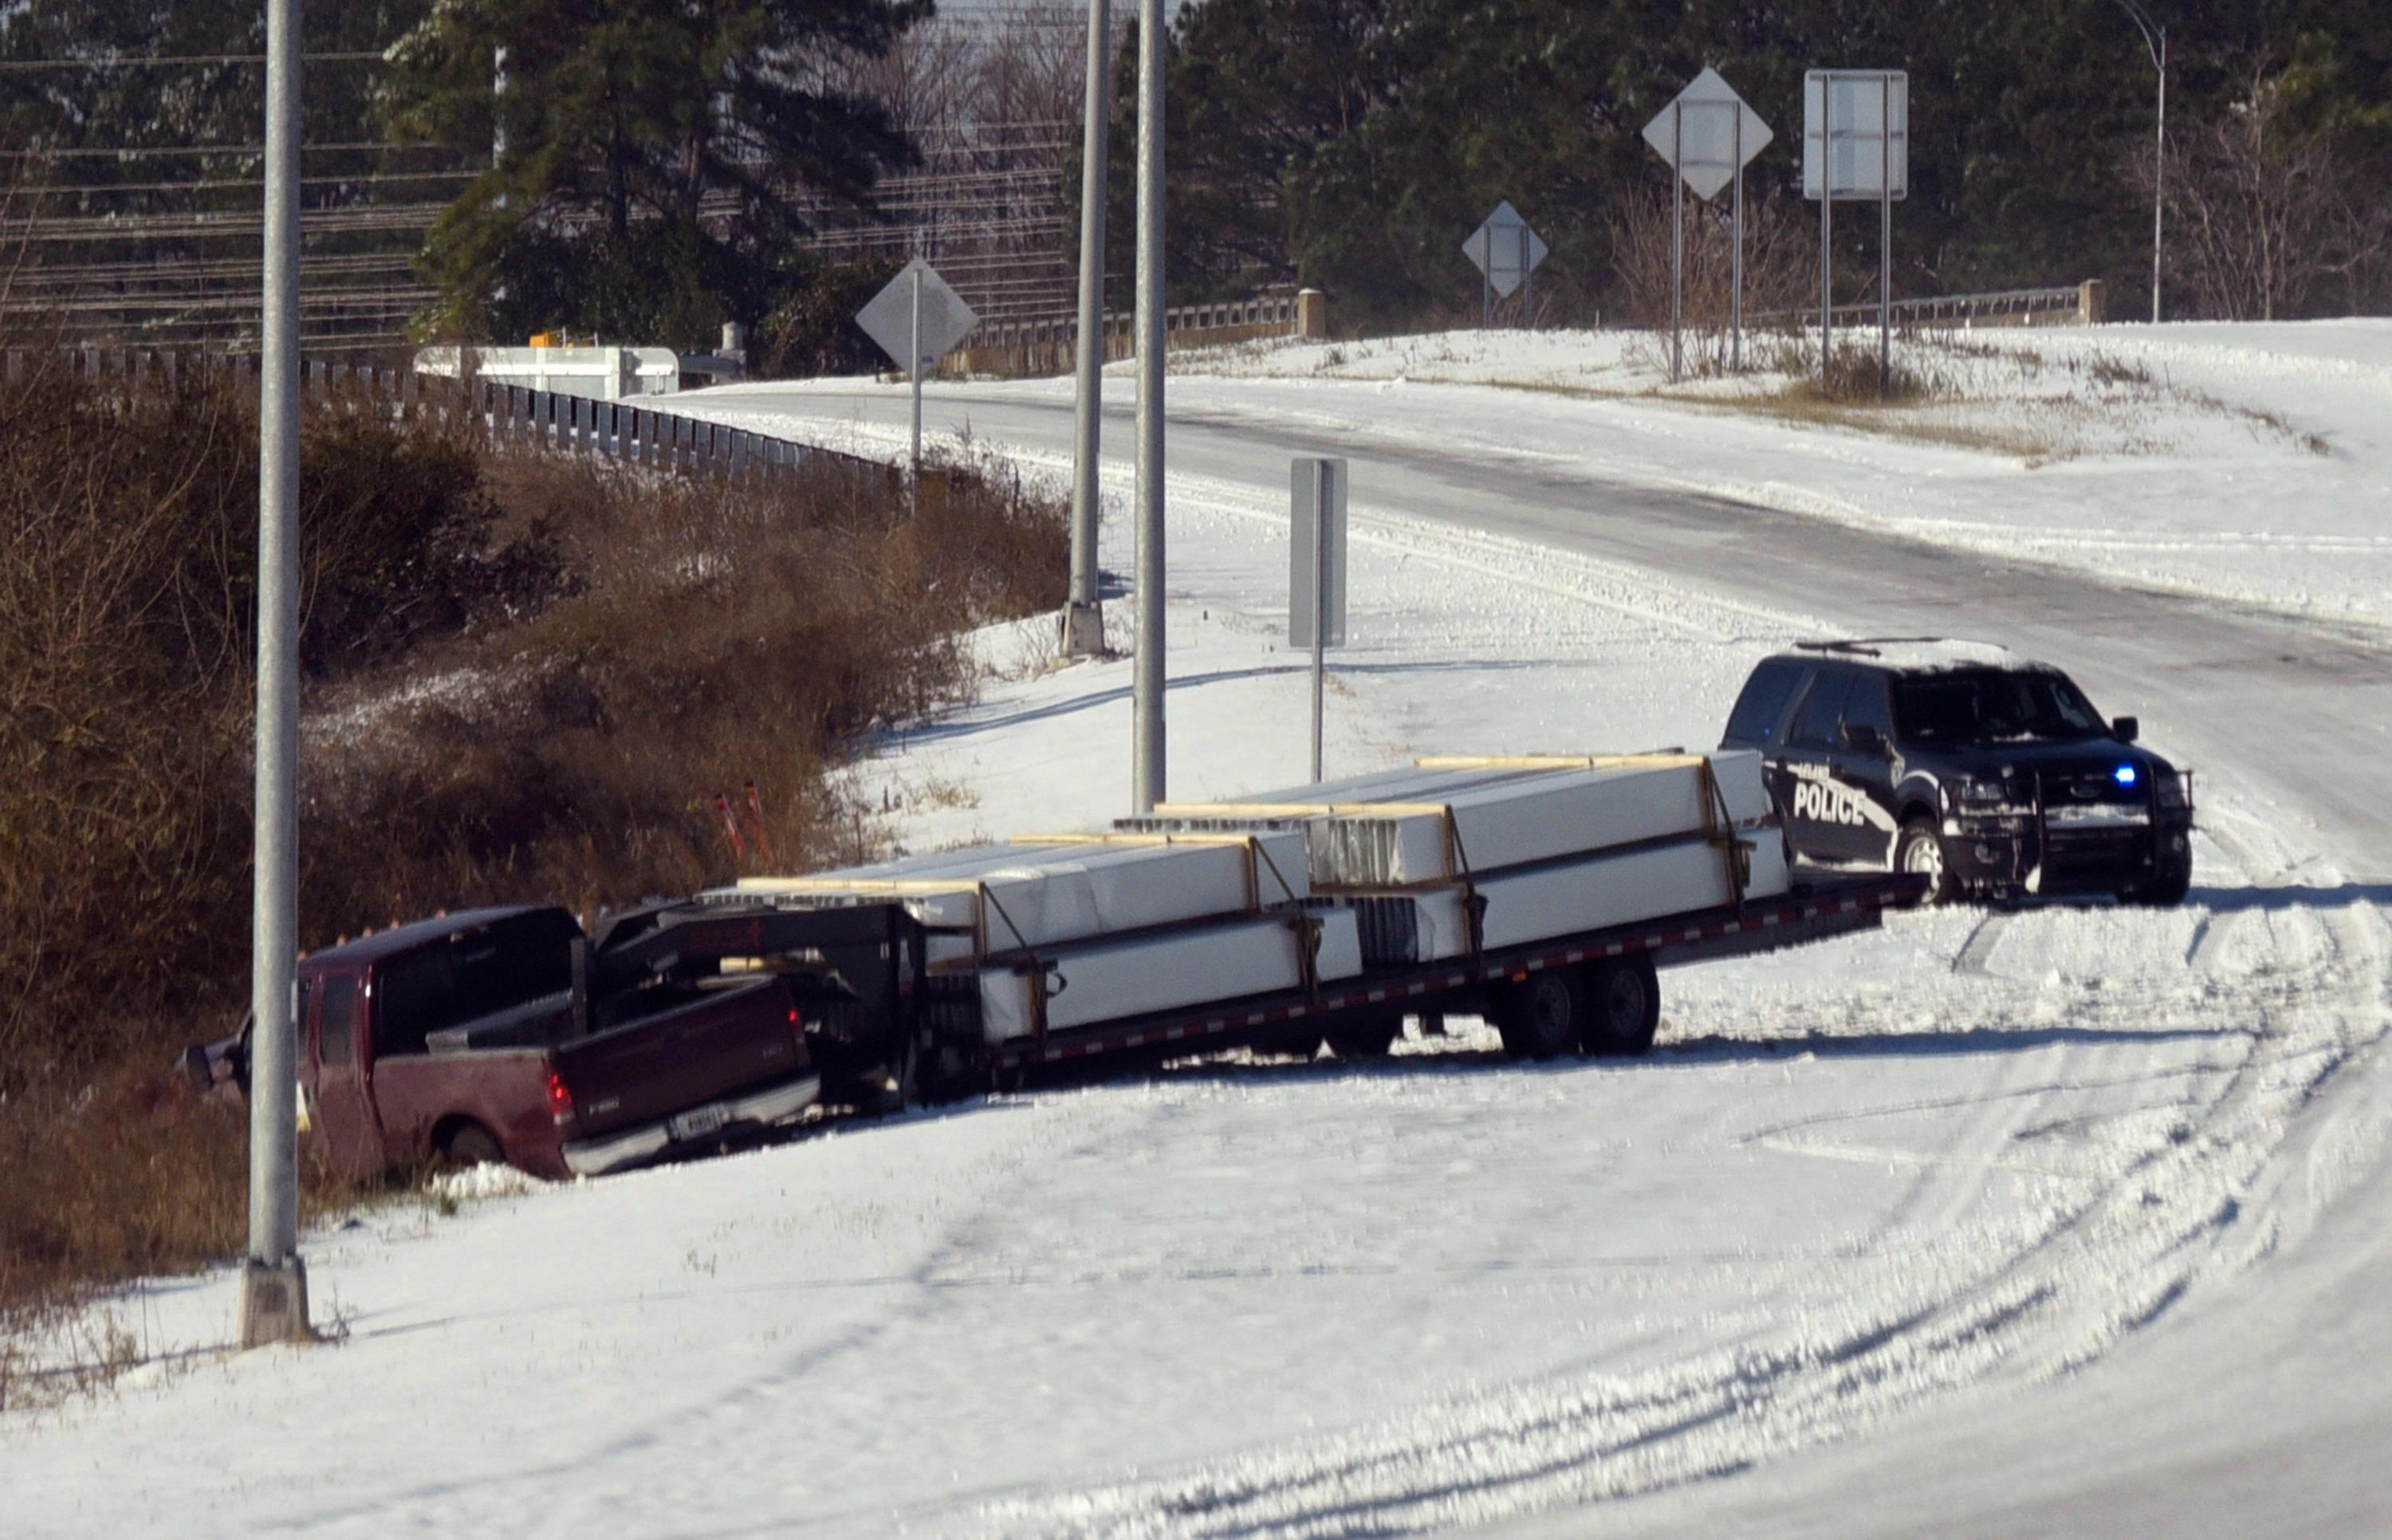 CORRECTS SOURCE TO THE STAR NEWS Leland Police look after a jack knifed truck along 74/76 in Leland, N.C. just before the Brunswick River Bridge Jan. 4, 2017. Just over 3 inches of snow covered the area after a winter storm moved through late last night. Areas along North Carolina's coast are reporting wind gusts of hurricane strength as part of a winter storm that's moving up the East Coast.   (Ken Blevins/The Star-News via AP)